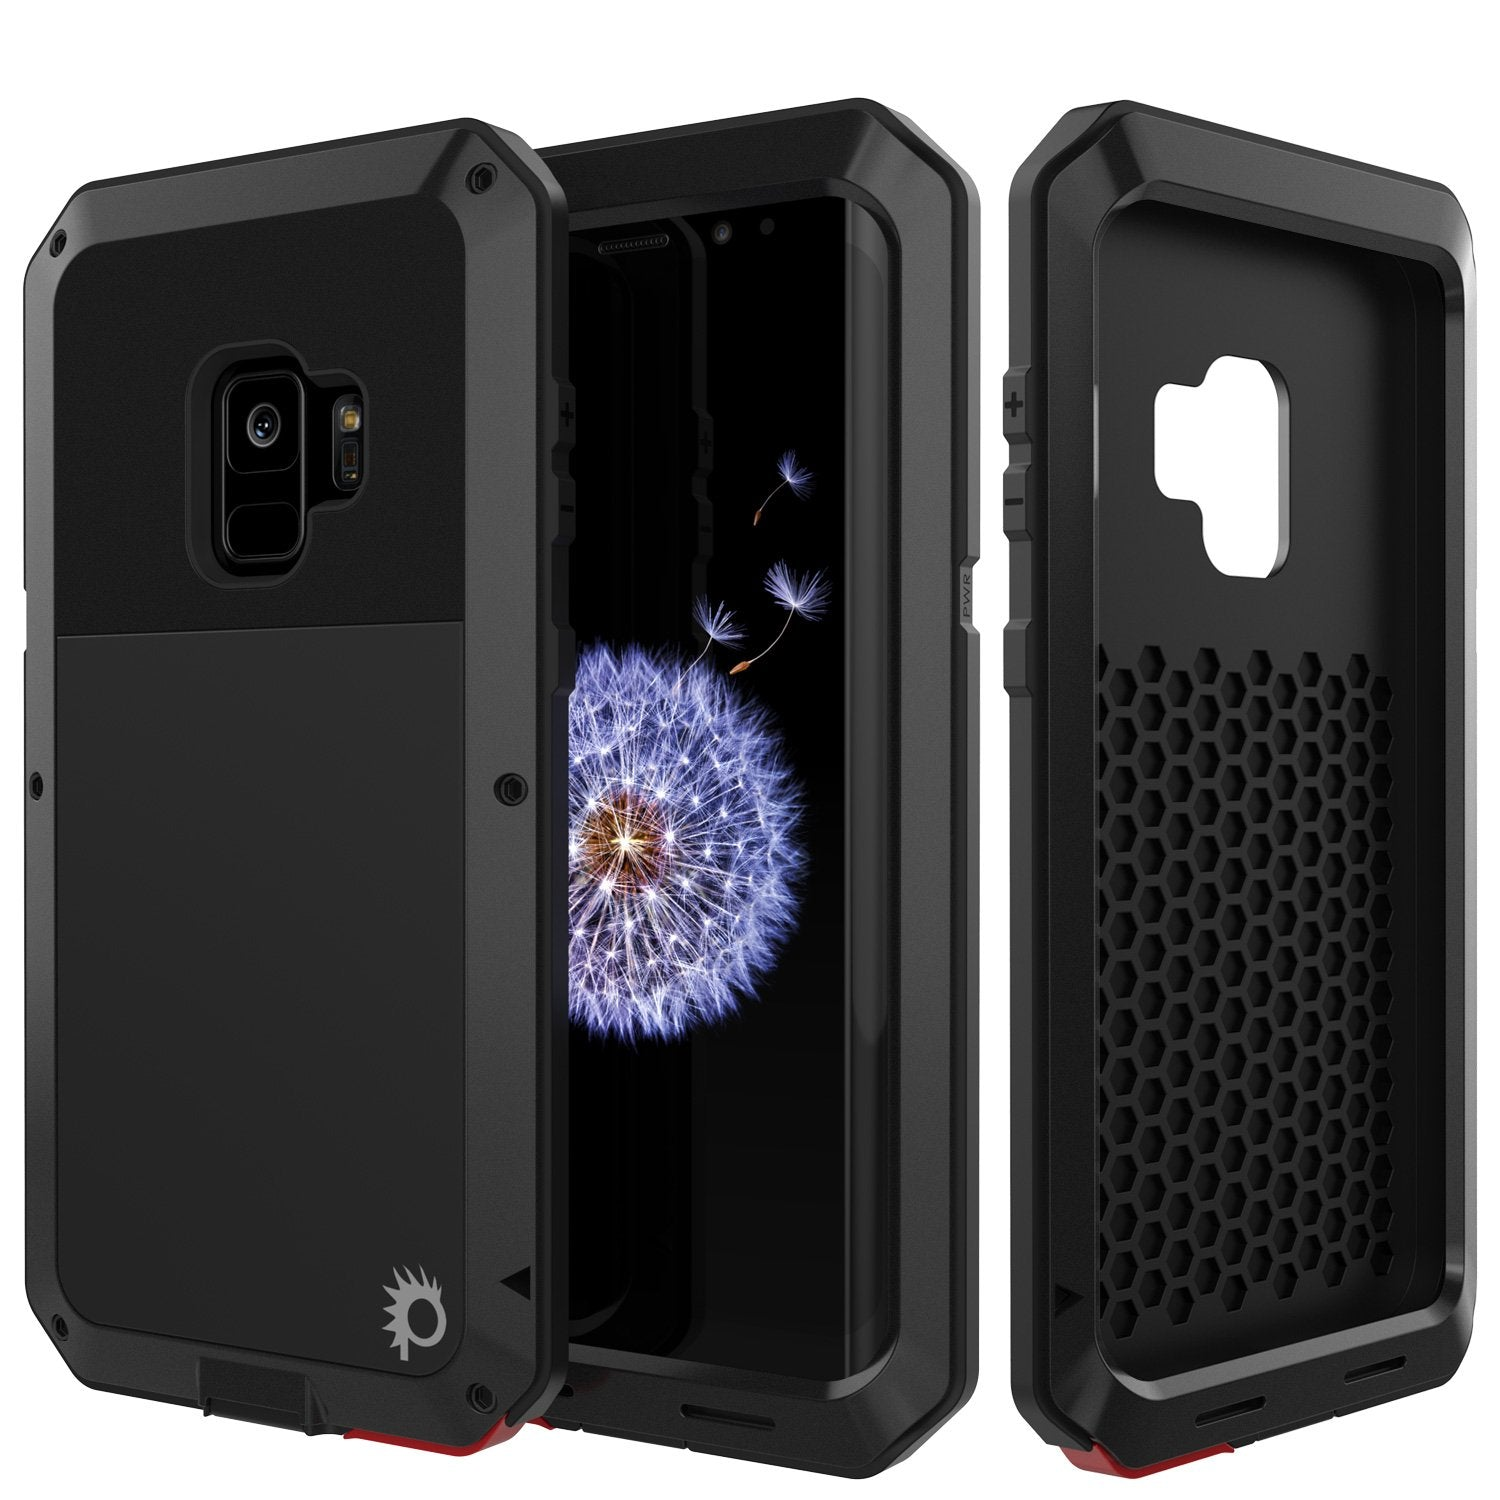 Galaxy S9 Metal Case, Heavy Duty Military Grade Rugged Armor Cover [shock proof] Hybrid Full Body Hard Aluminum & TPU Design [non slip] W/ Prime Drop Protection for Samsung Galaxy S9 [Black]